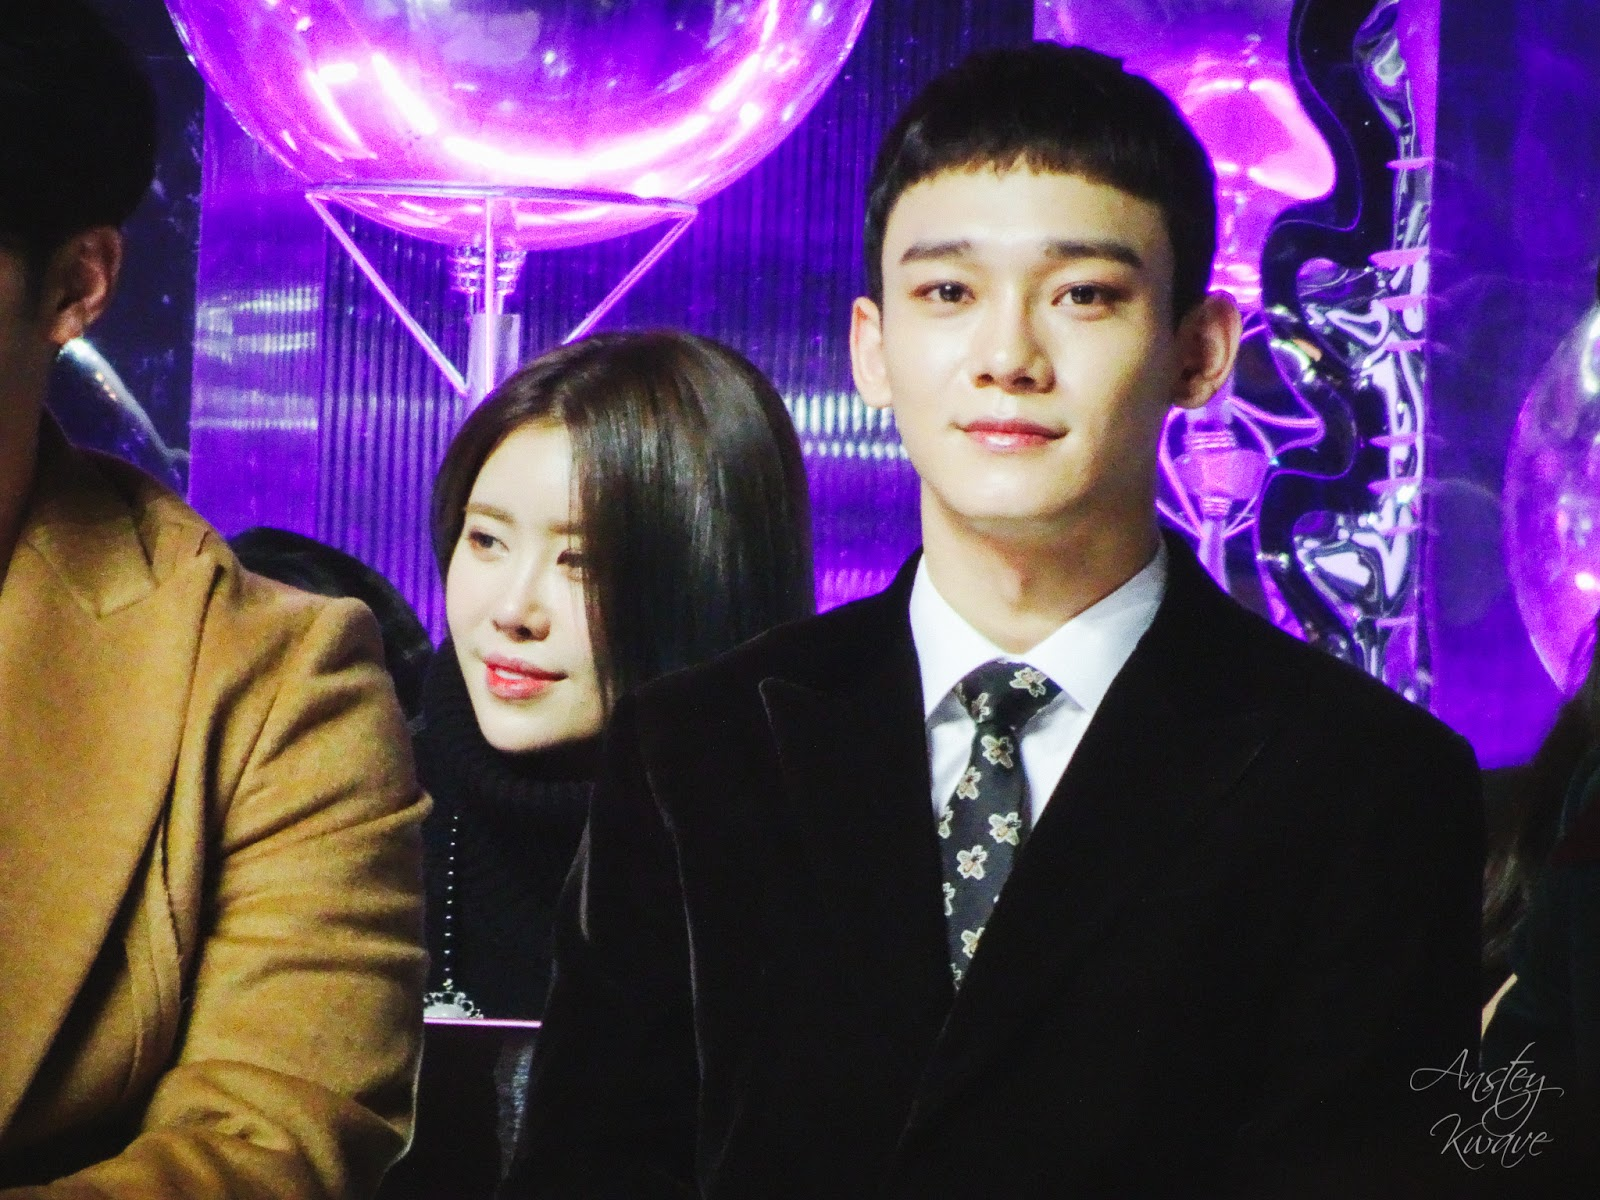 Chen, member of famous Korean boy band EXO at Melon Music Awards (MMA) 2017 in Seoul, South Korea